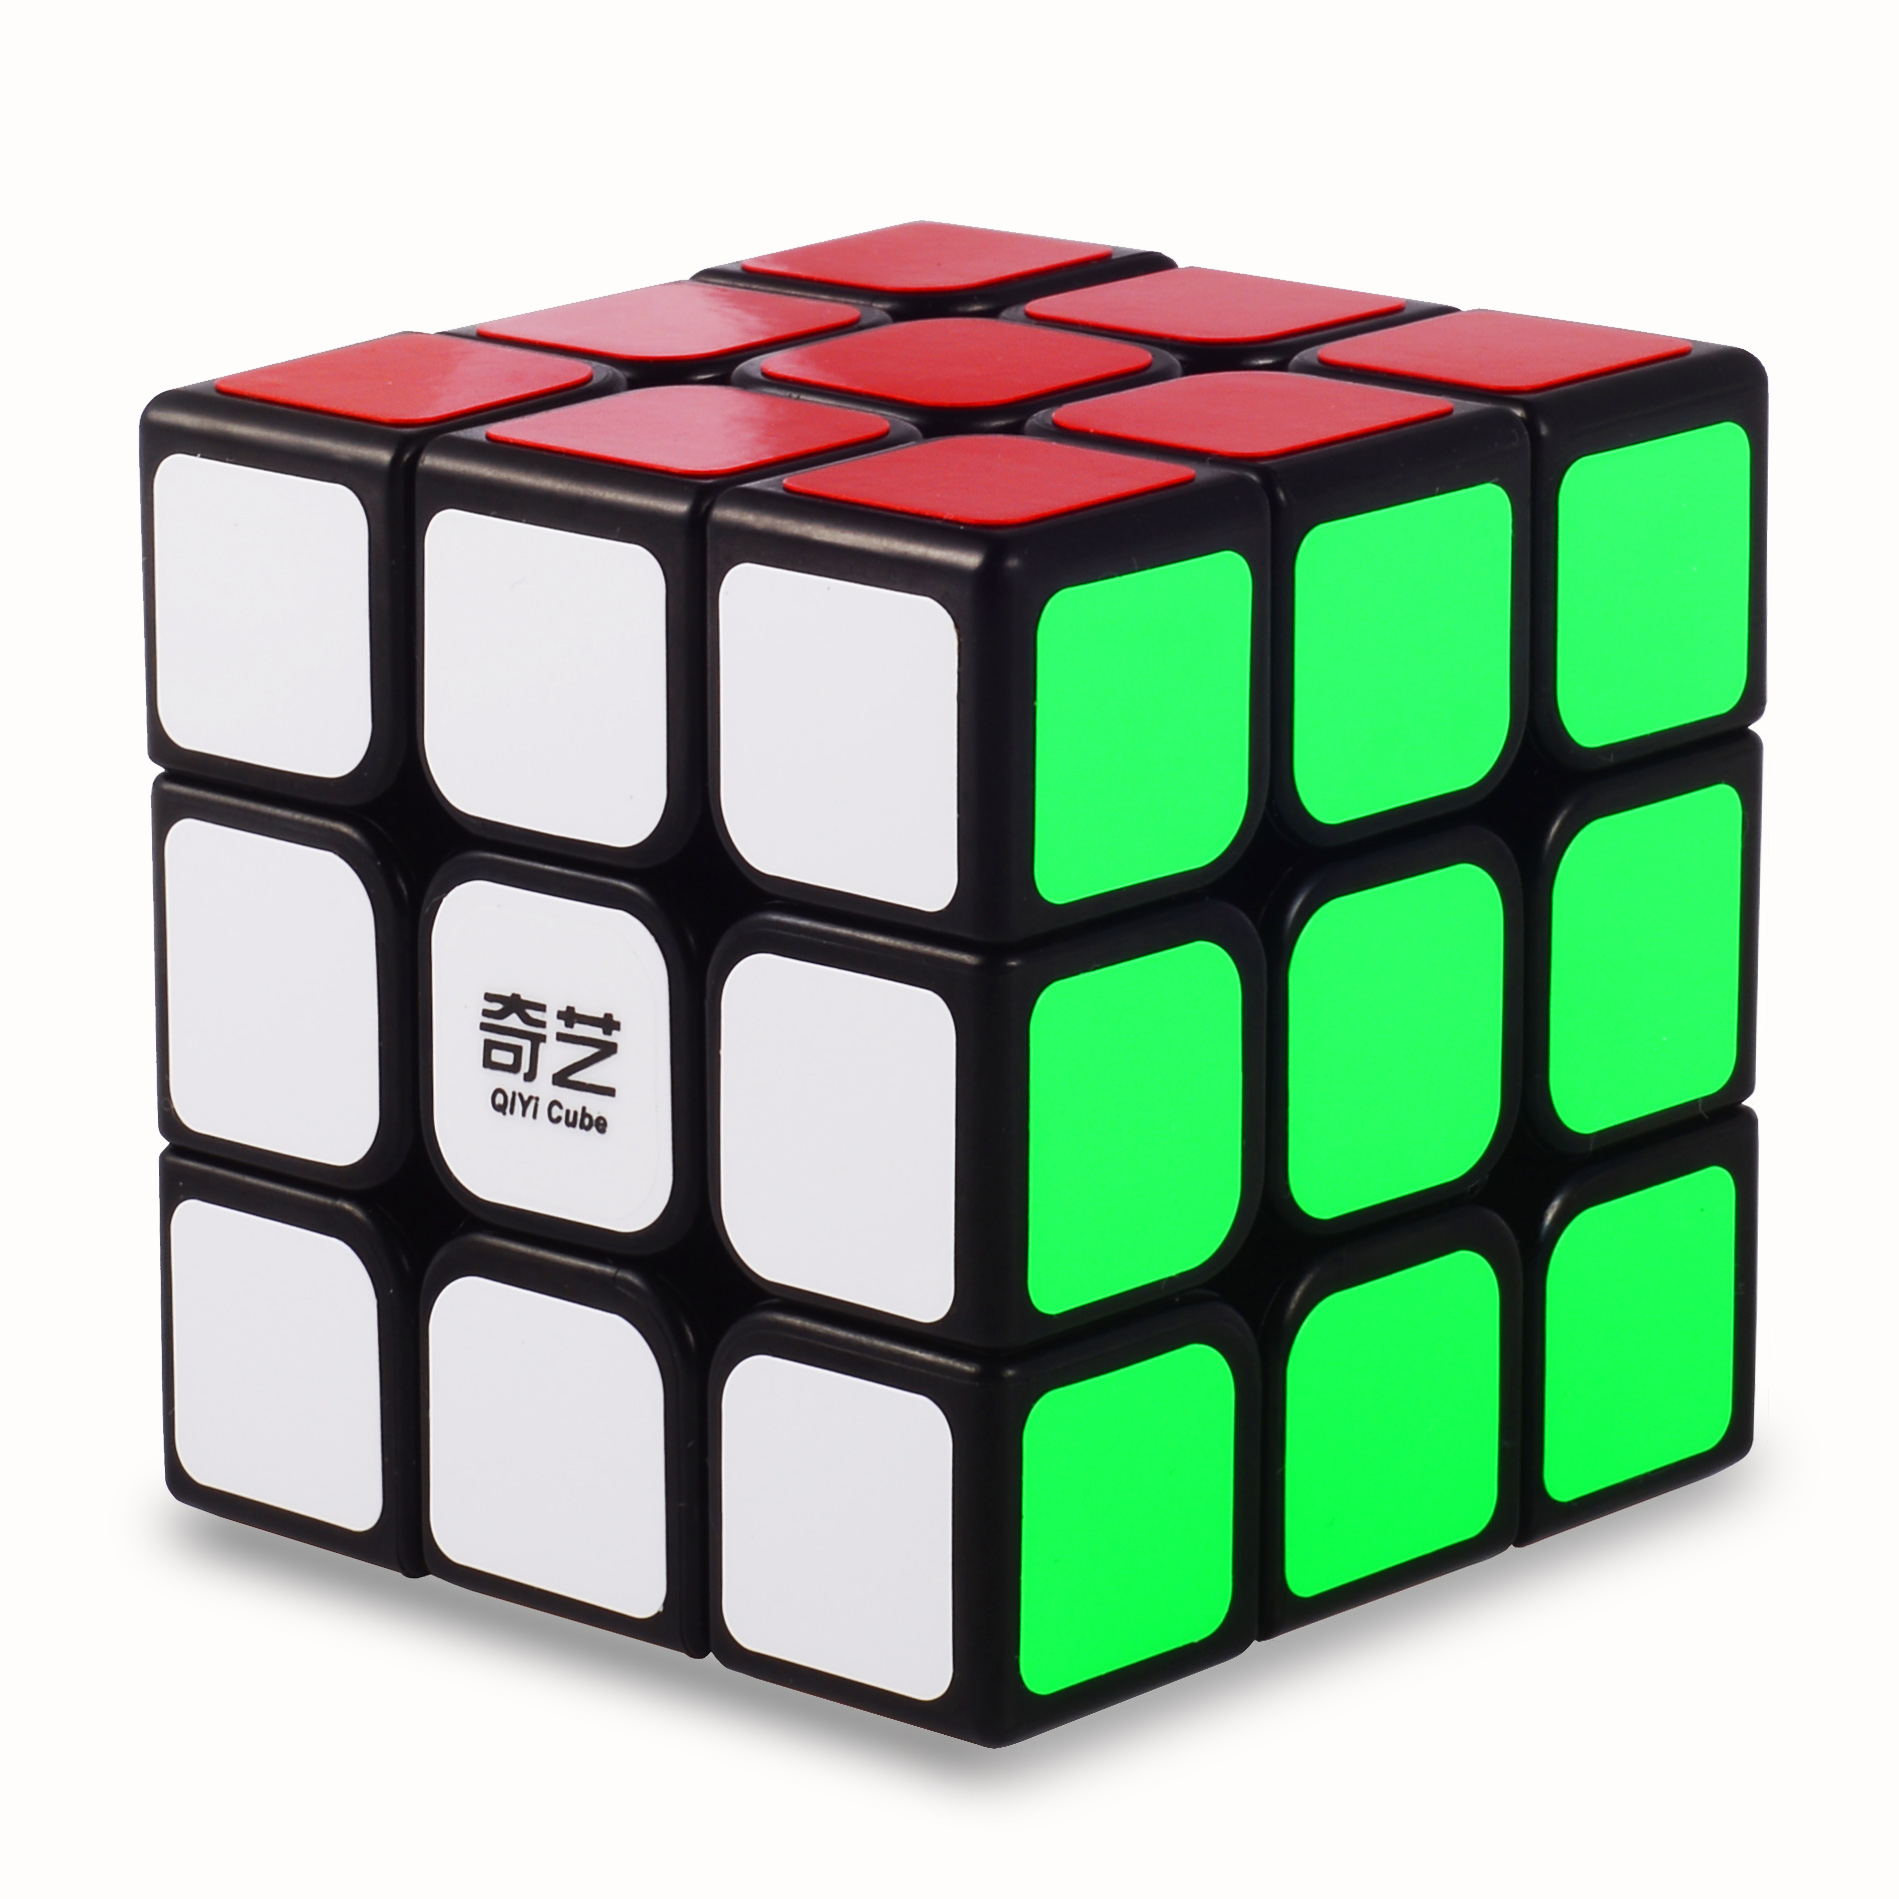 Qiyi Magic Cube Classic Toys 3x3x3 Sticker Block Speed Cube Colorful Learning Educational Puzzle Cubo Magico Toys Cube